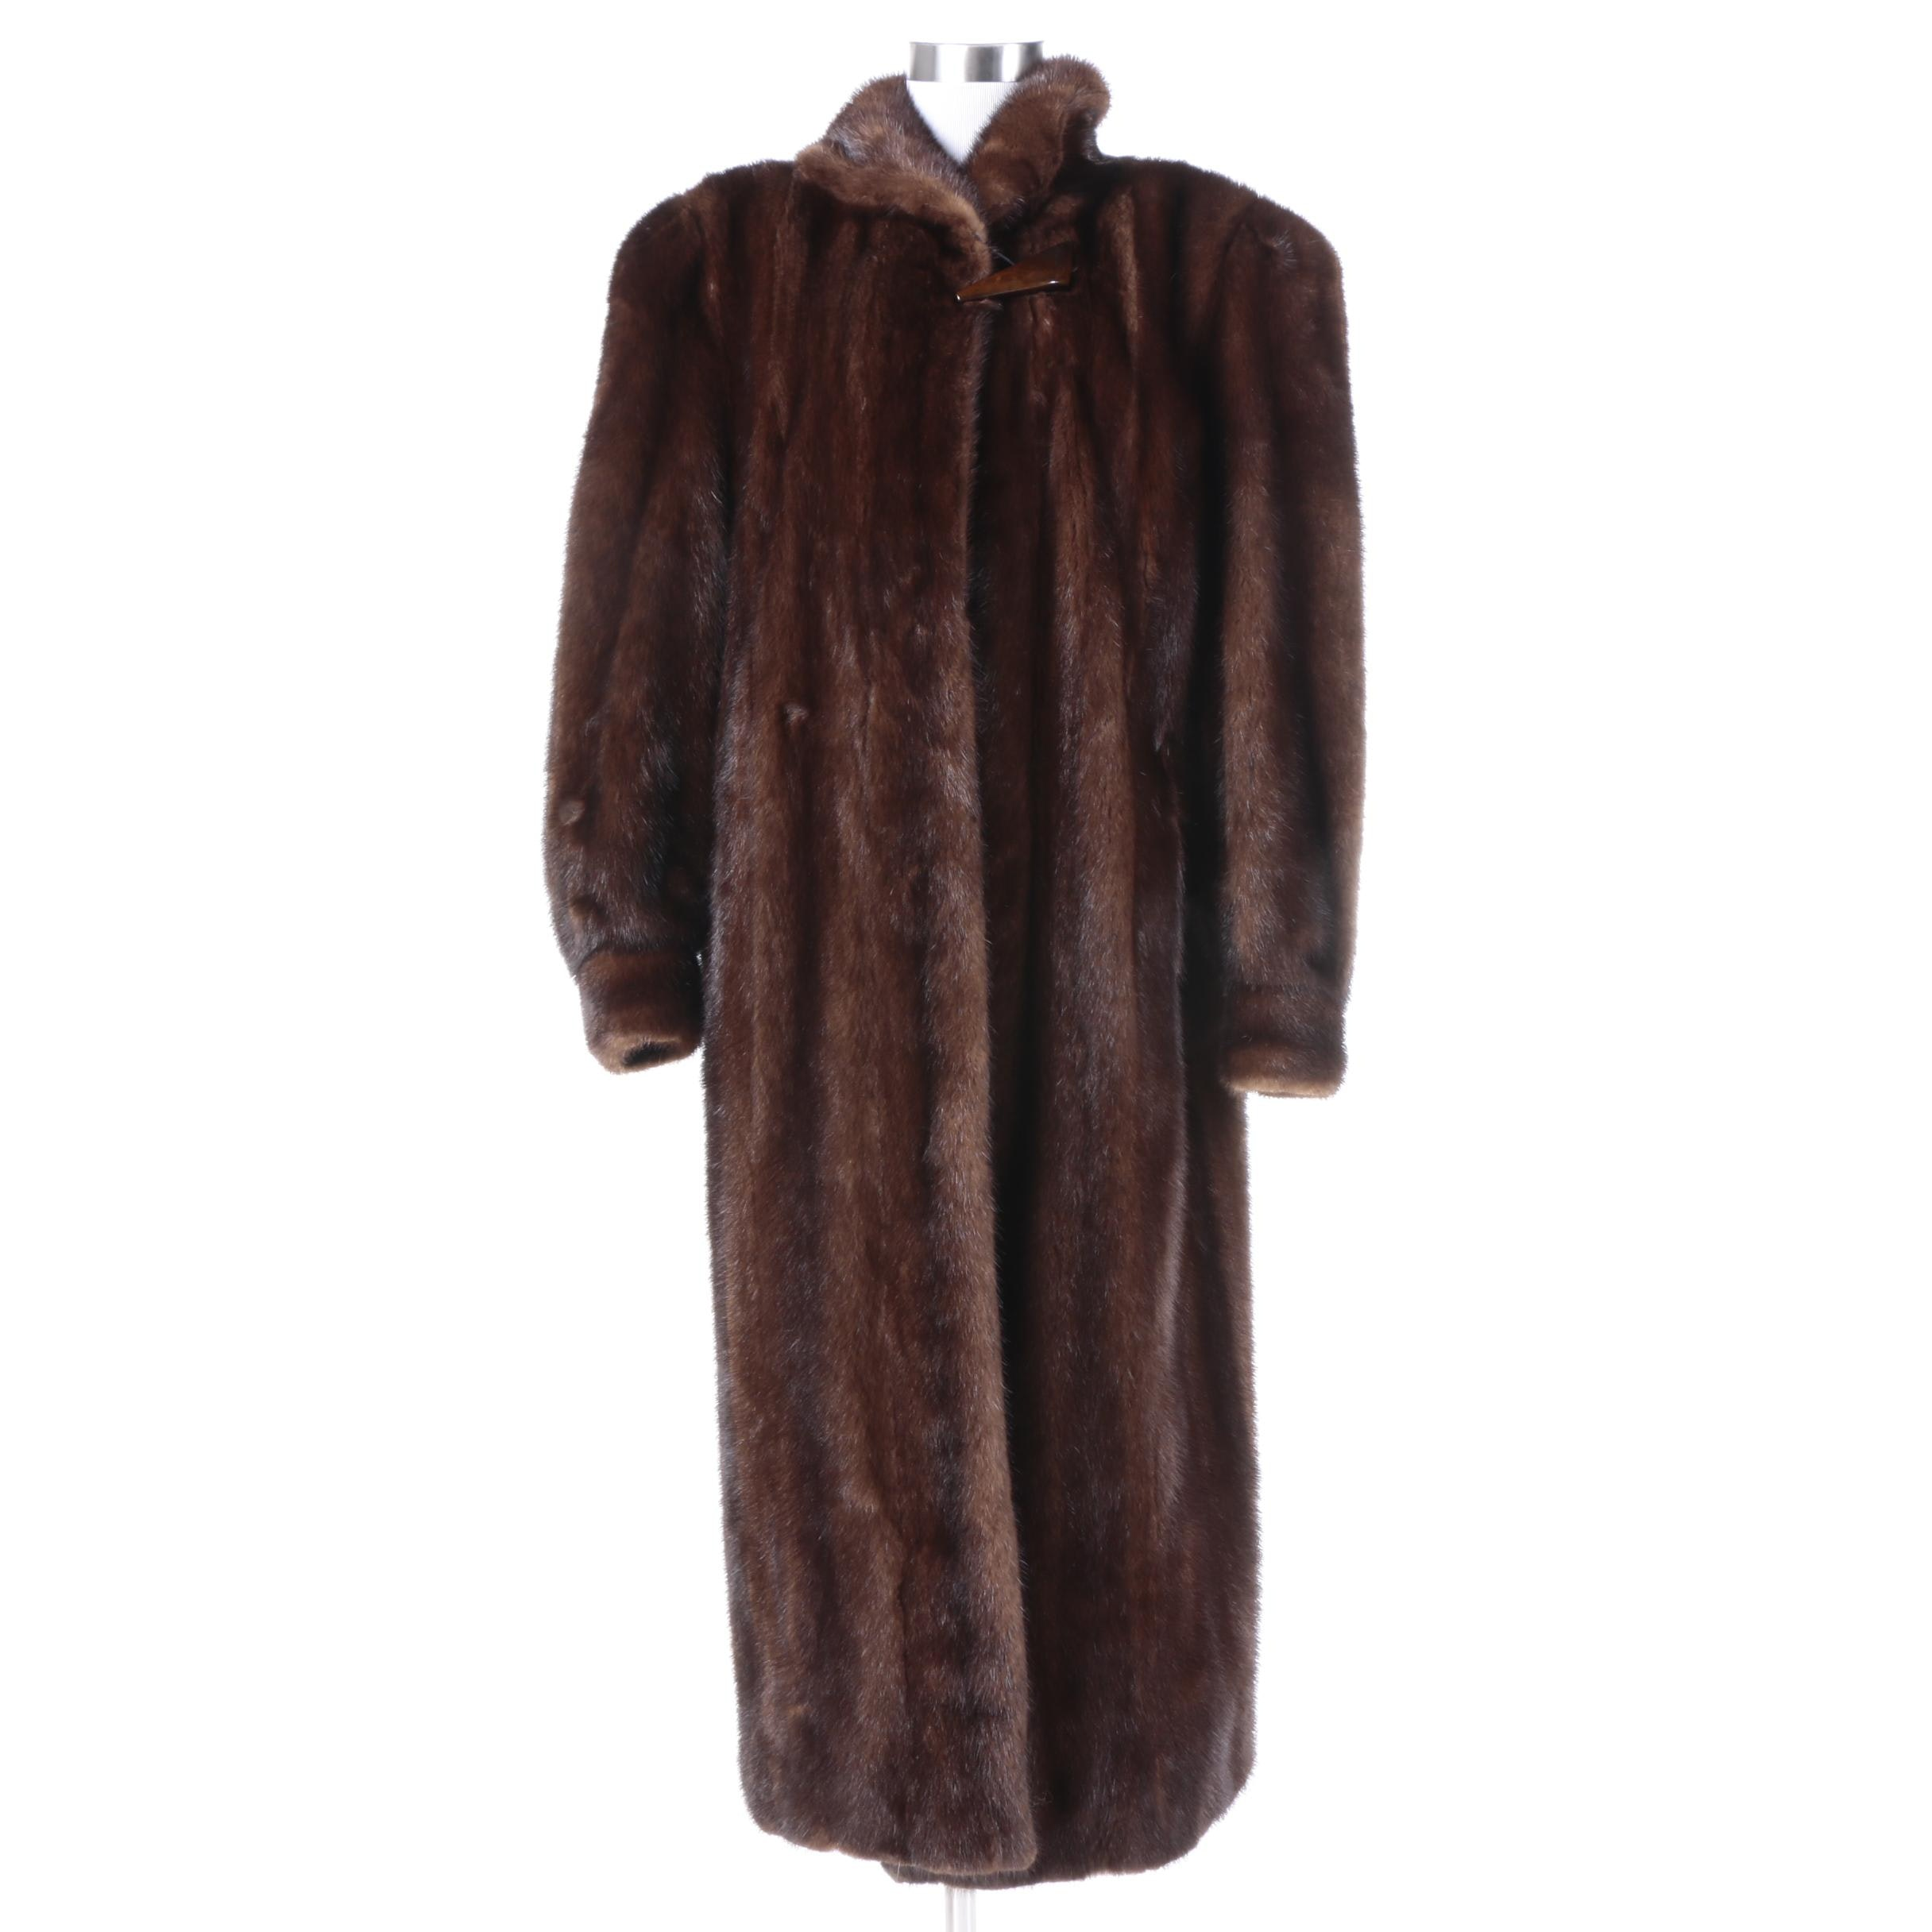 Women's Vintage Full-Length Dyed Dark Brown Mink Fur Coat